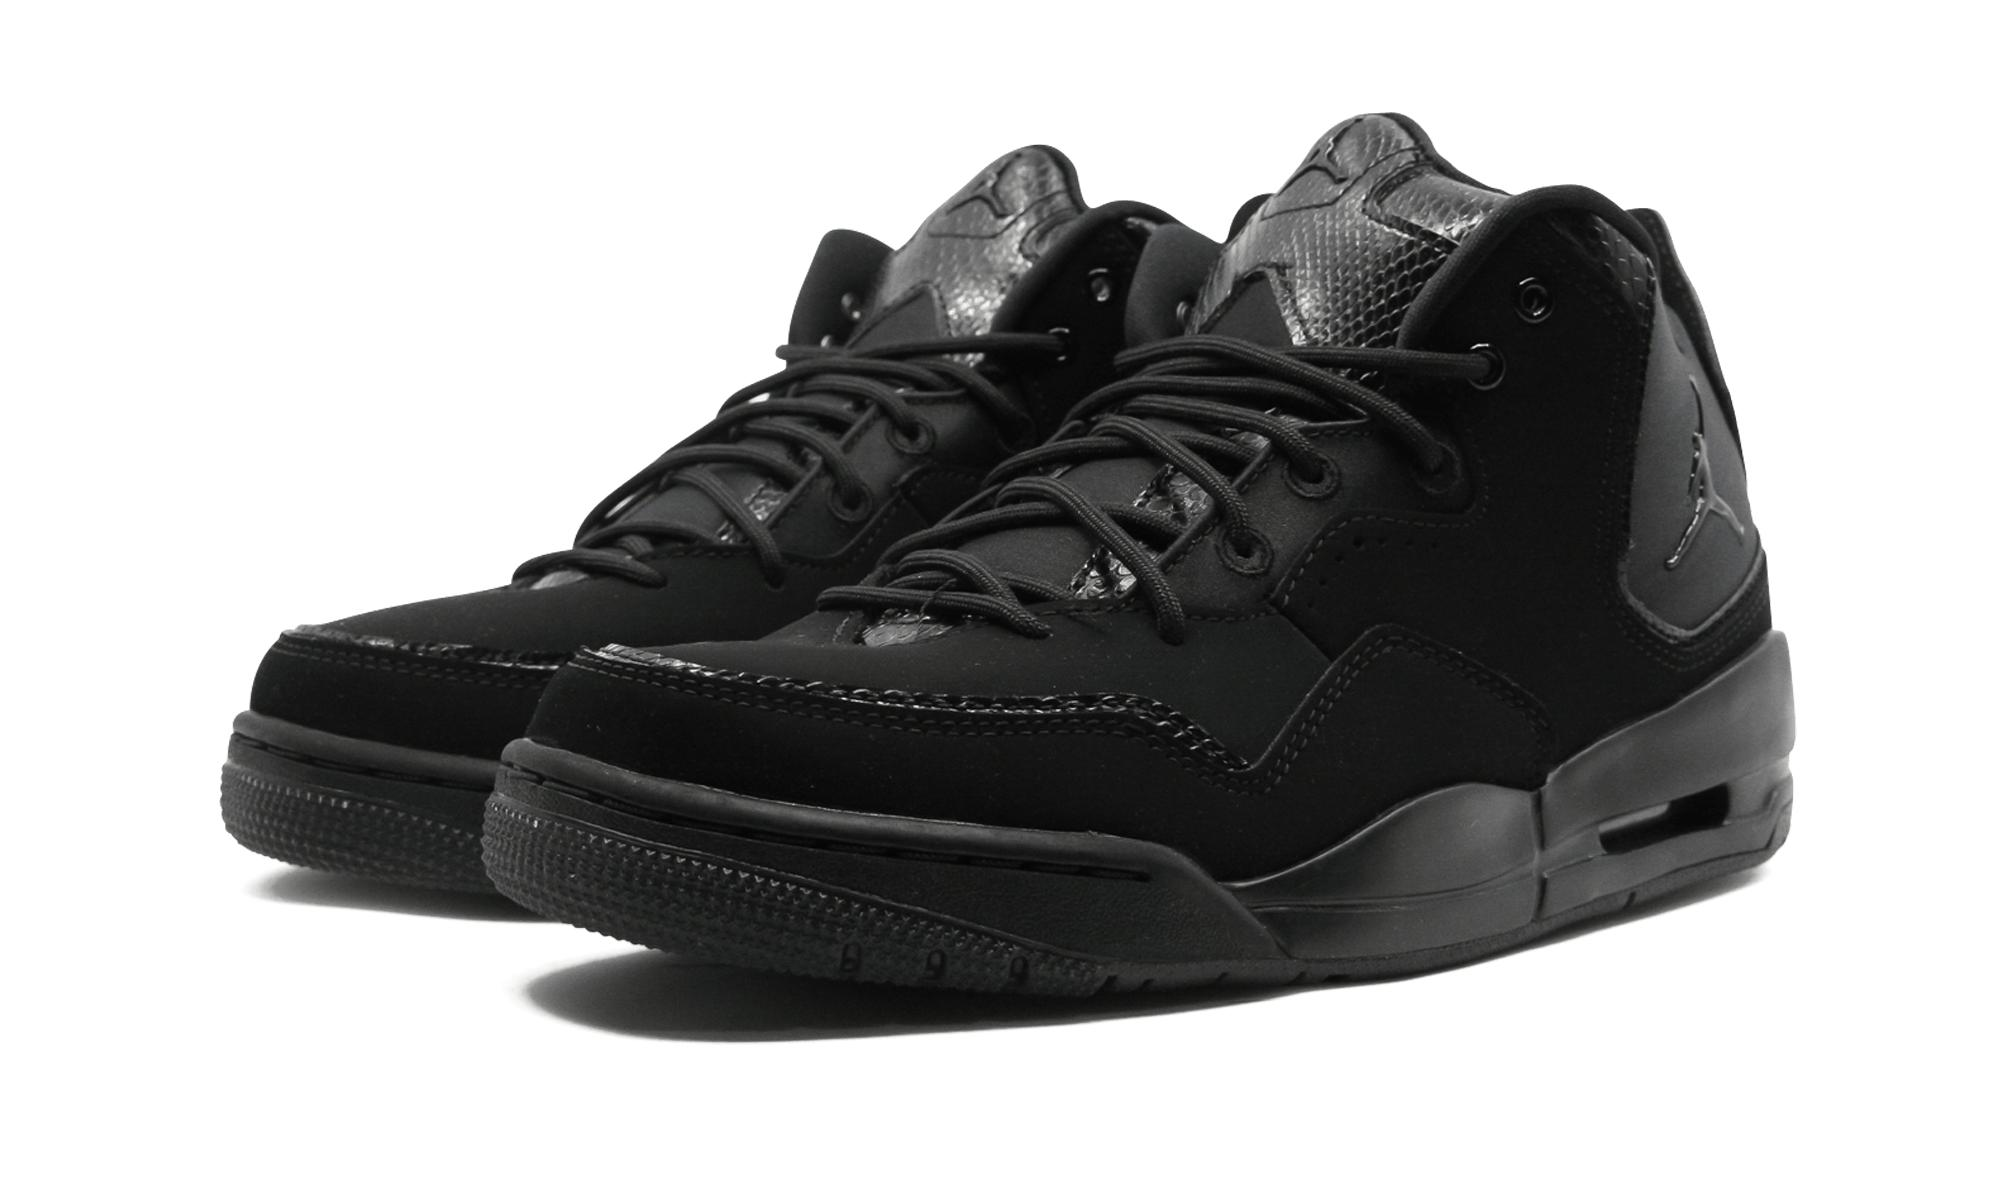 74314ed2a Lyst - Nike Courtside 23 in Black for Men - Save 10%